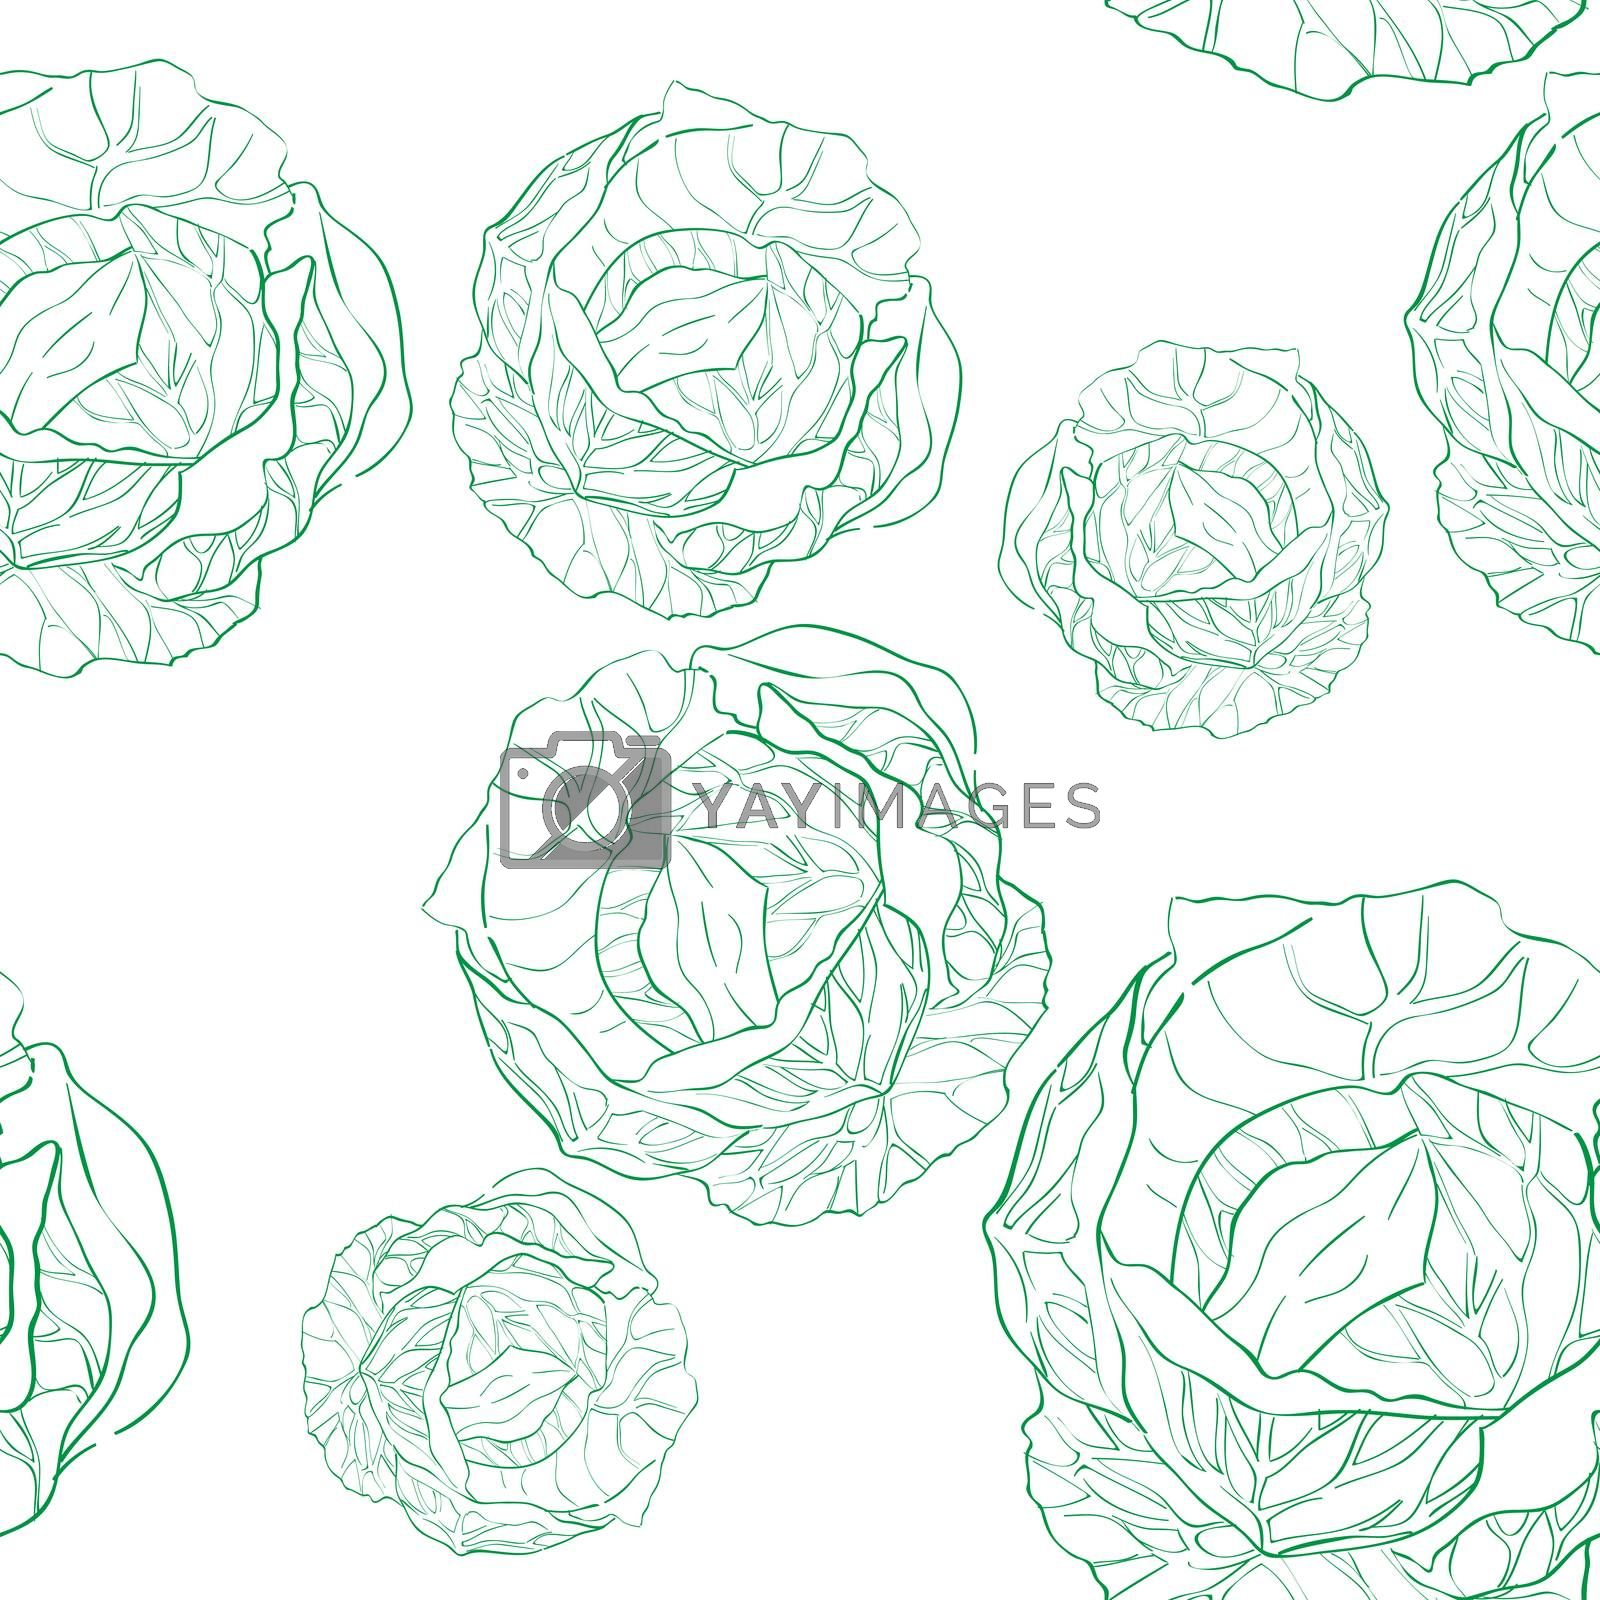 Cabbage seamless pattern, doodle illustration of multiple vegetables isolated on white